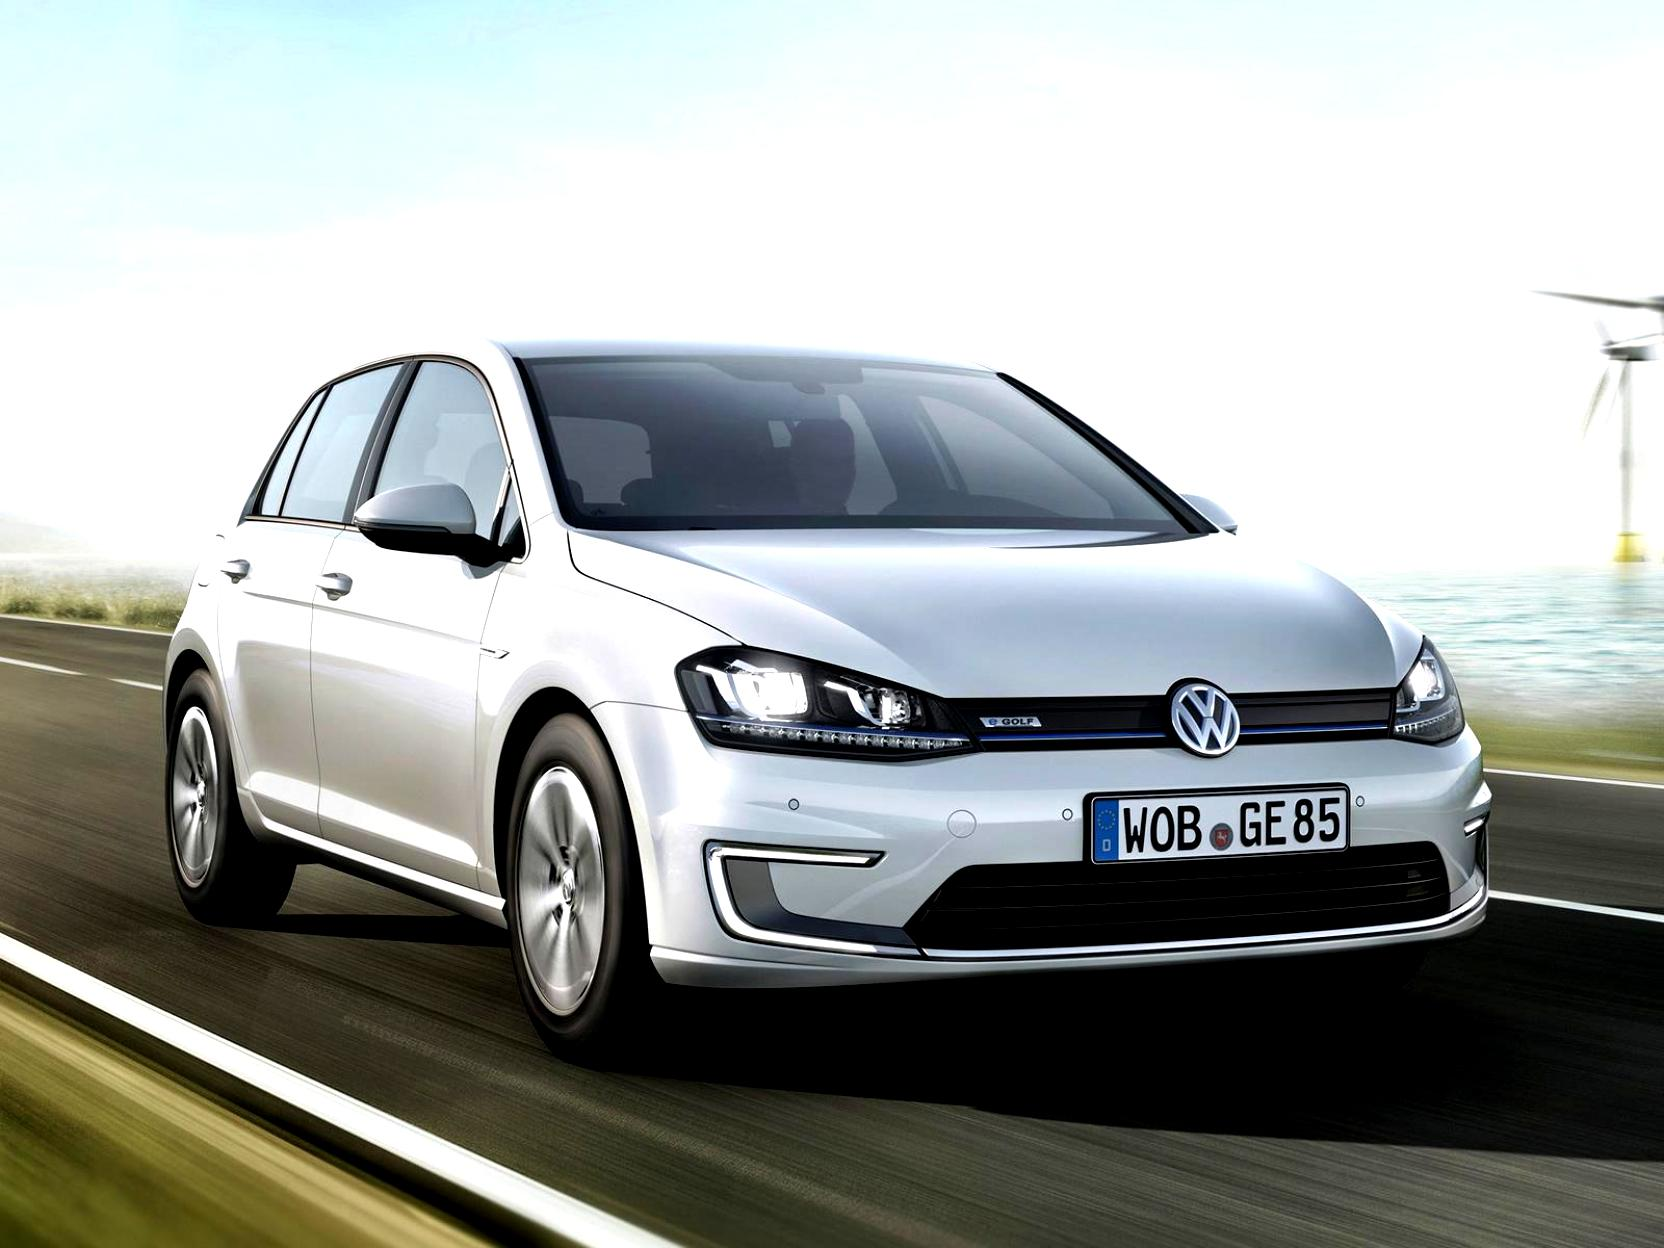 Volkswagen E-Golf 2014 #24